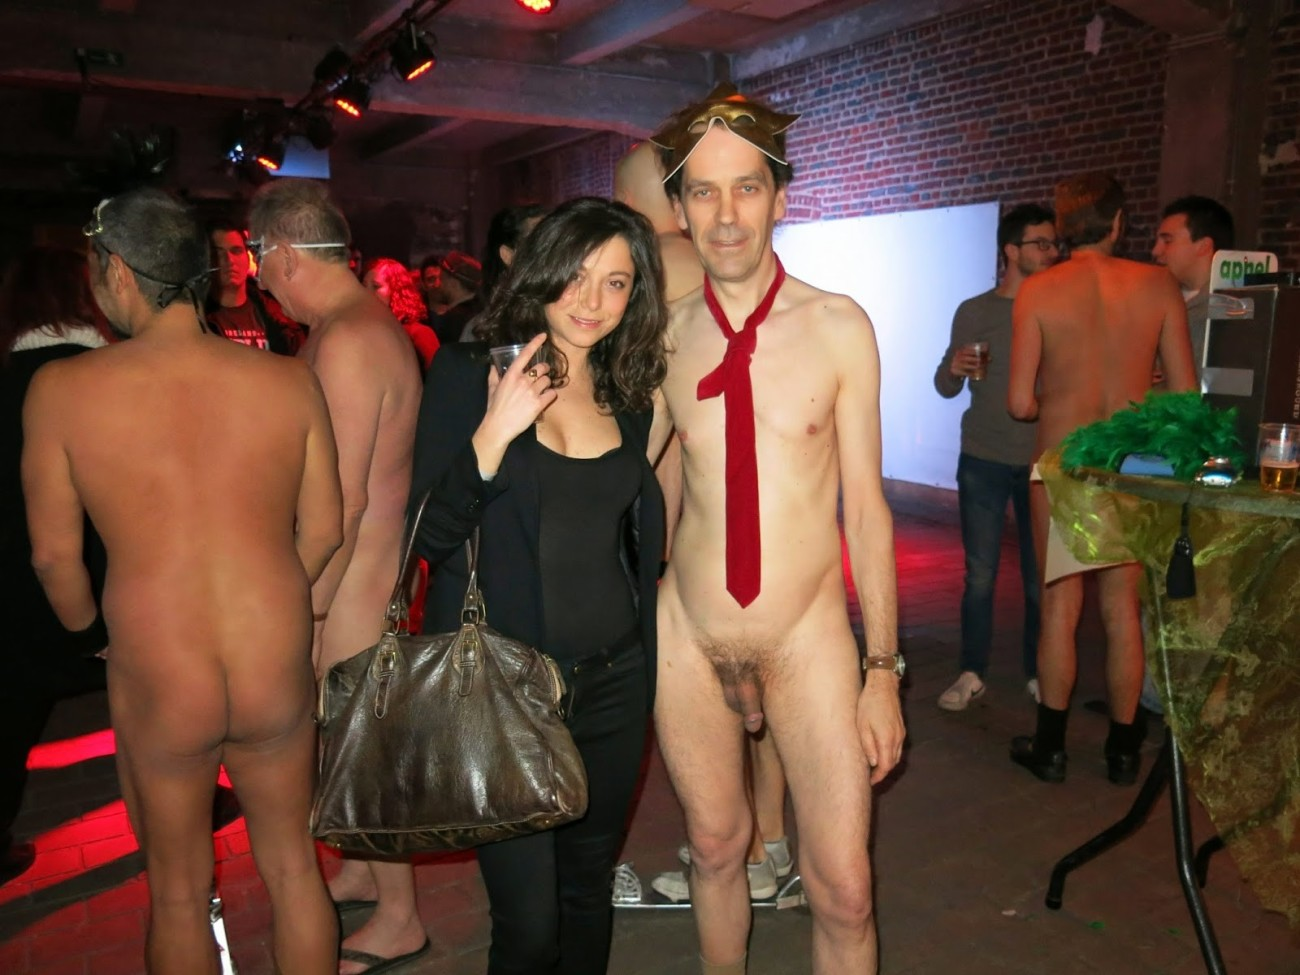 CFNM Clothed Female Naked Male,..